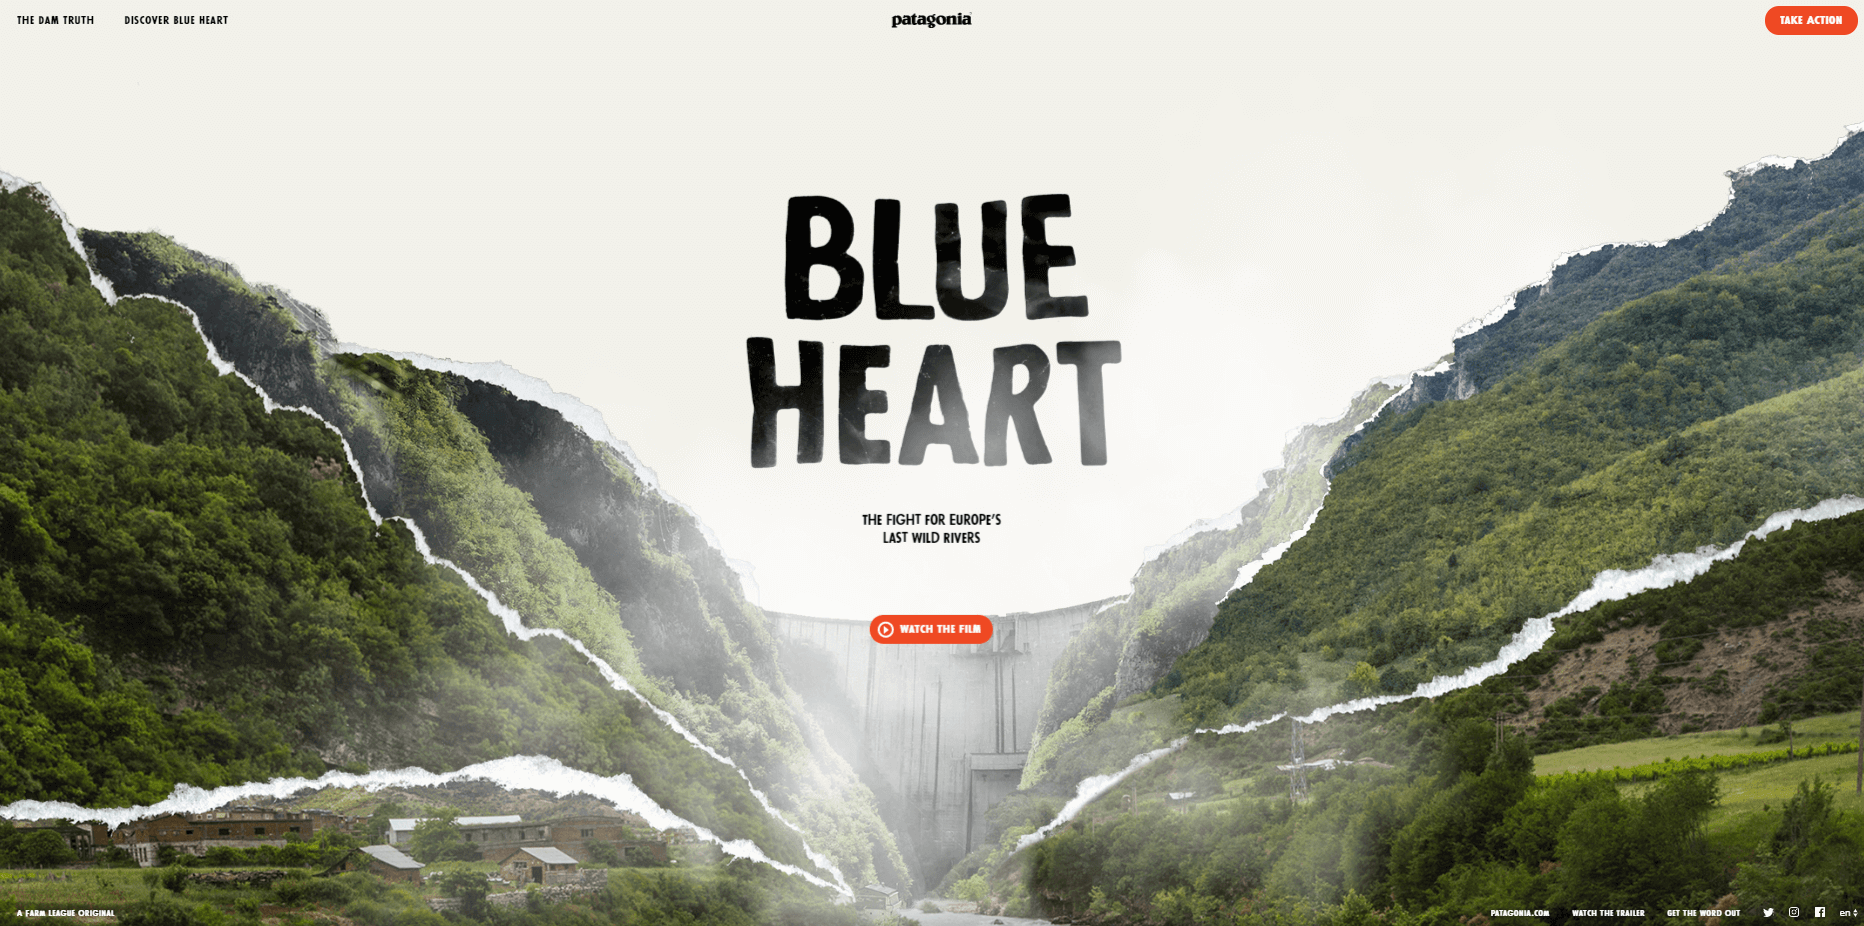 Microsite example - Patagonia's Blue Heart Campaign